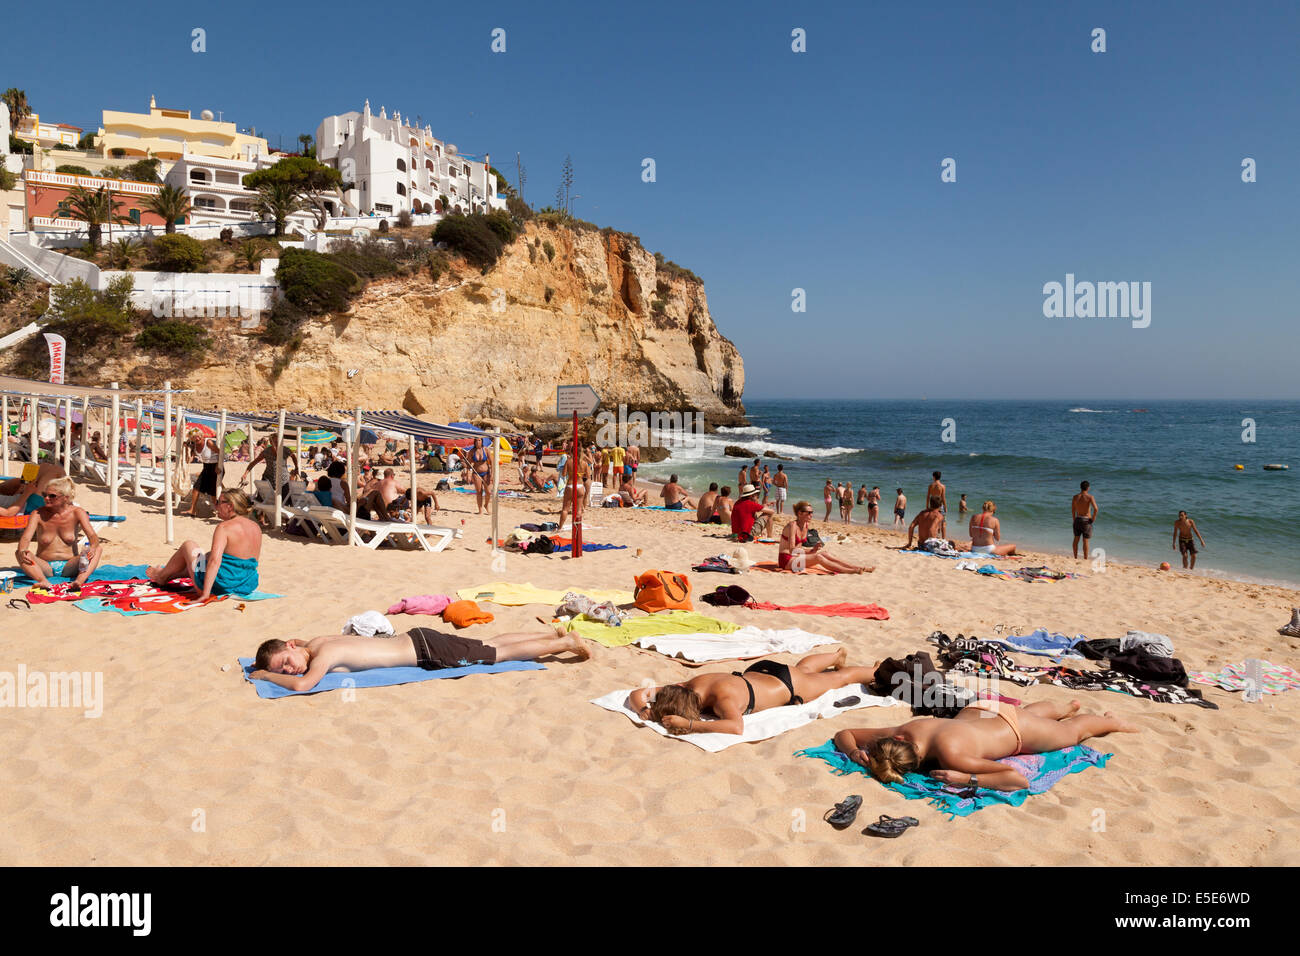 People Sunbathing On Summer Holiday Carvoeiro Beach Algarve Portugal Europe